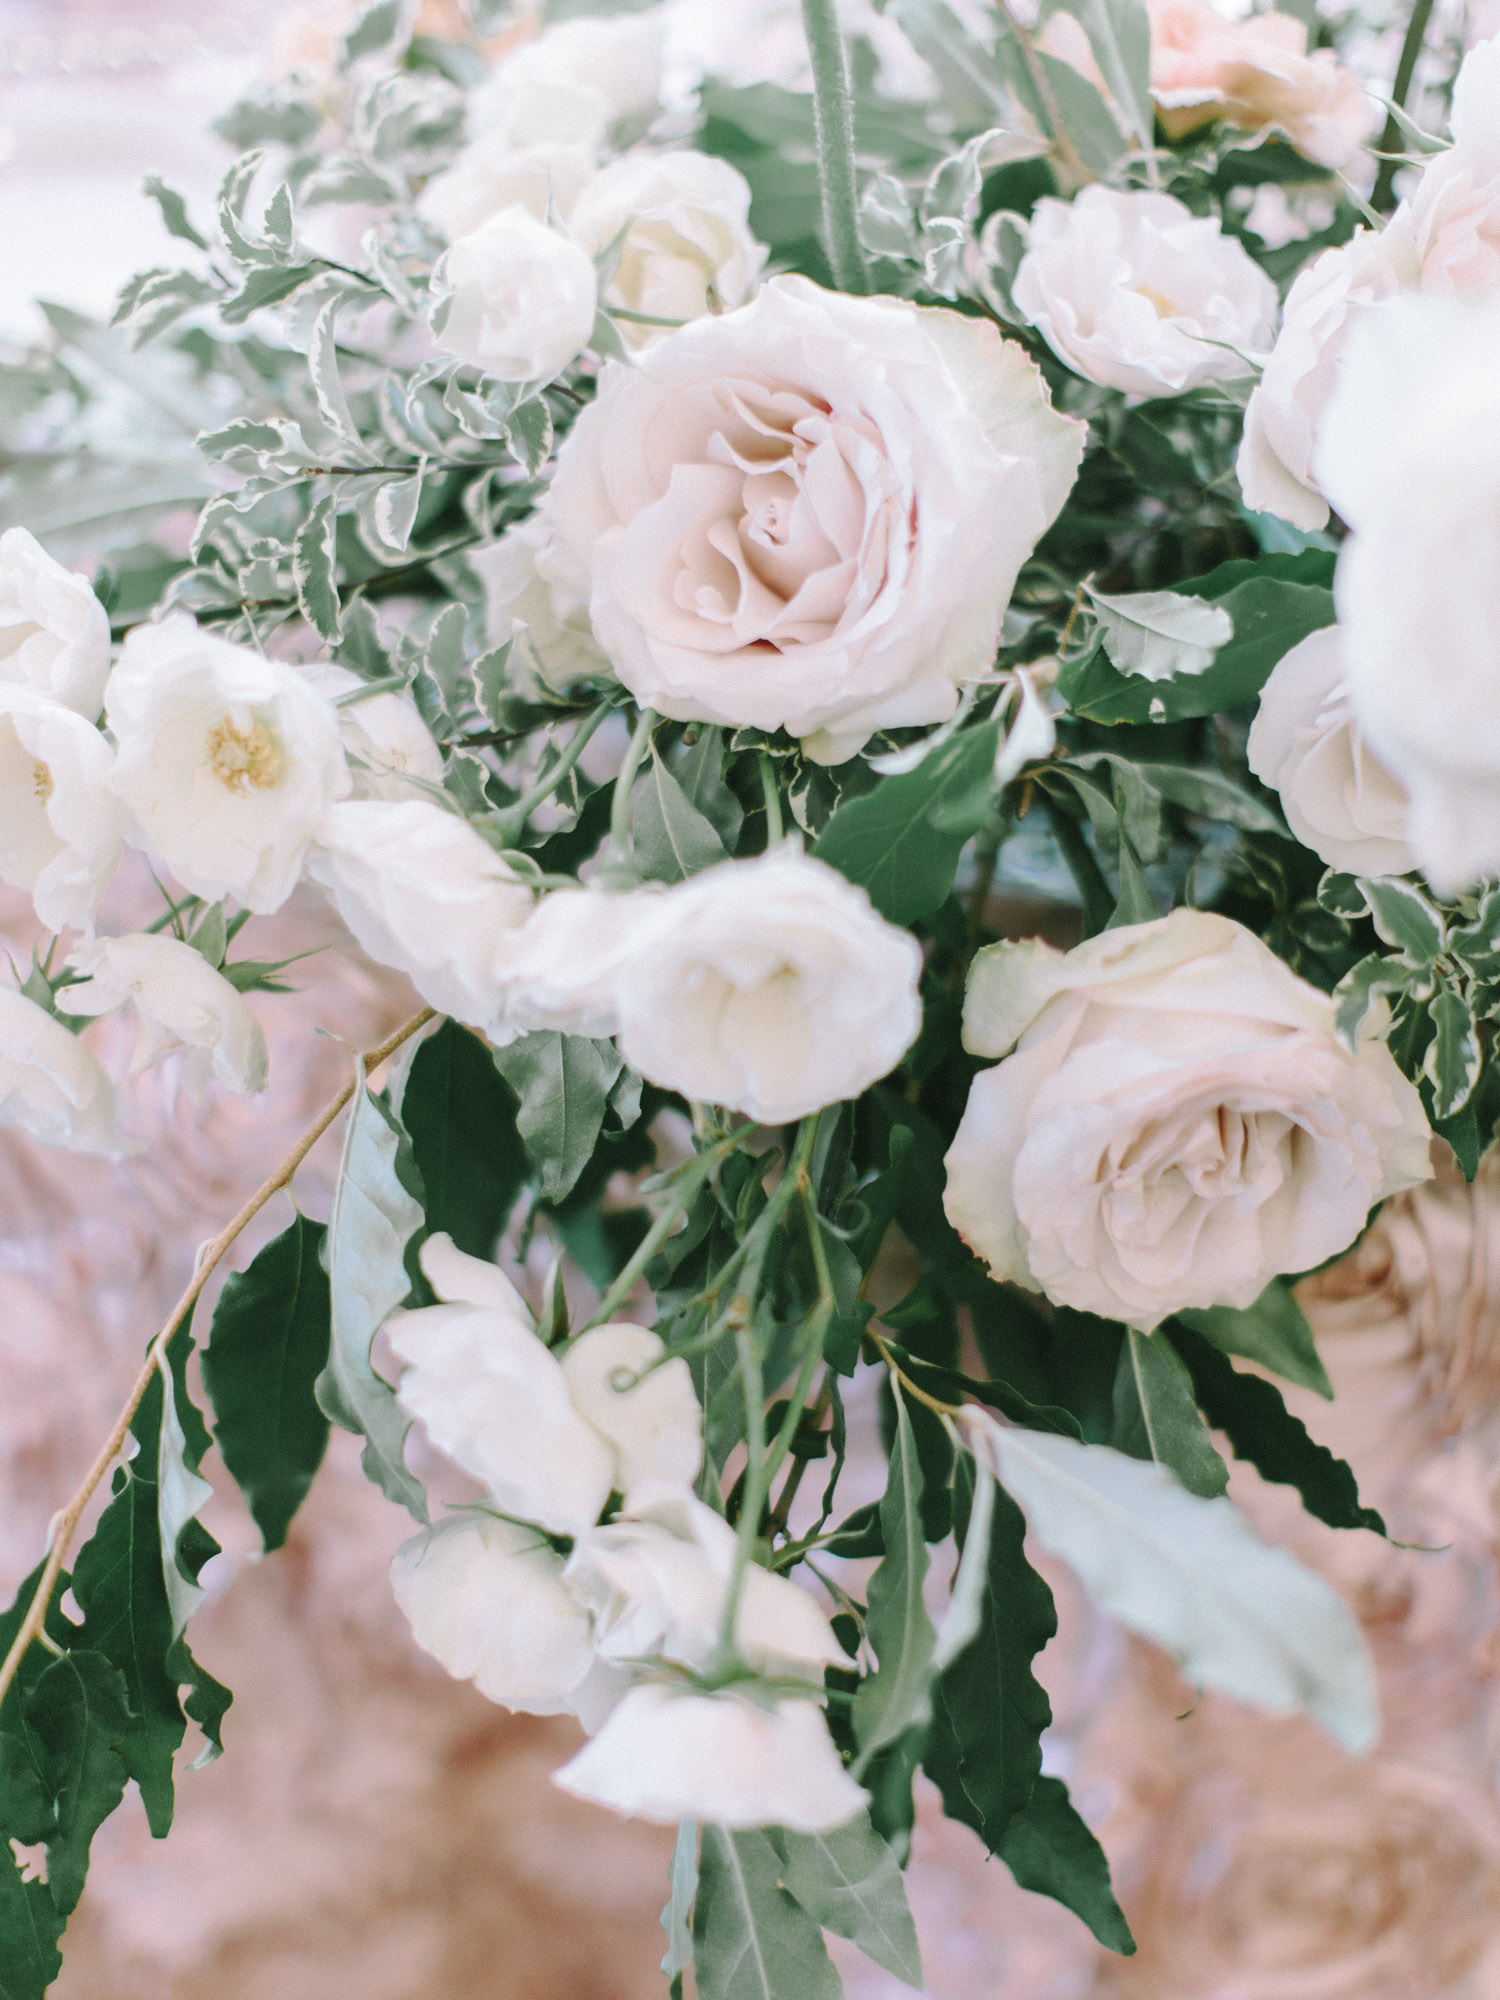 Blush garden roses and greenery make for romantic sweetheart table decor at a wedding venue in Ann Arbor, Michigan